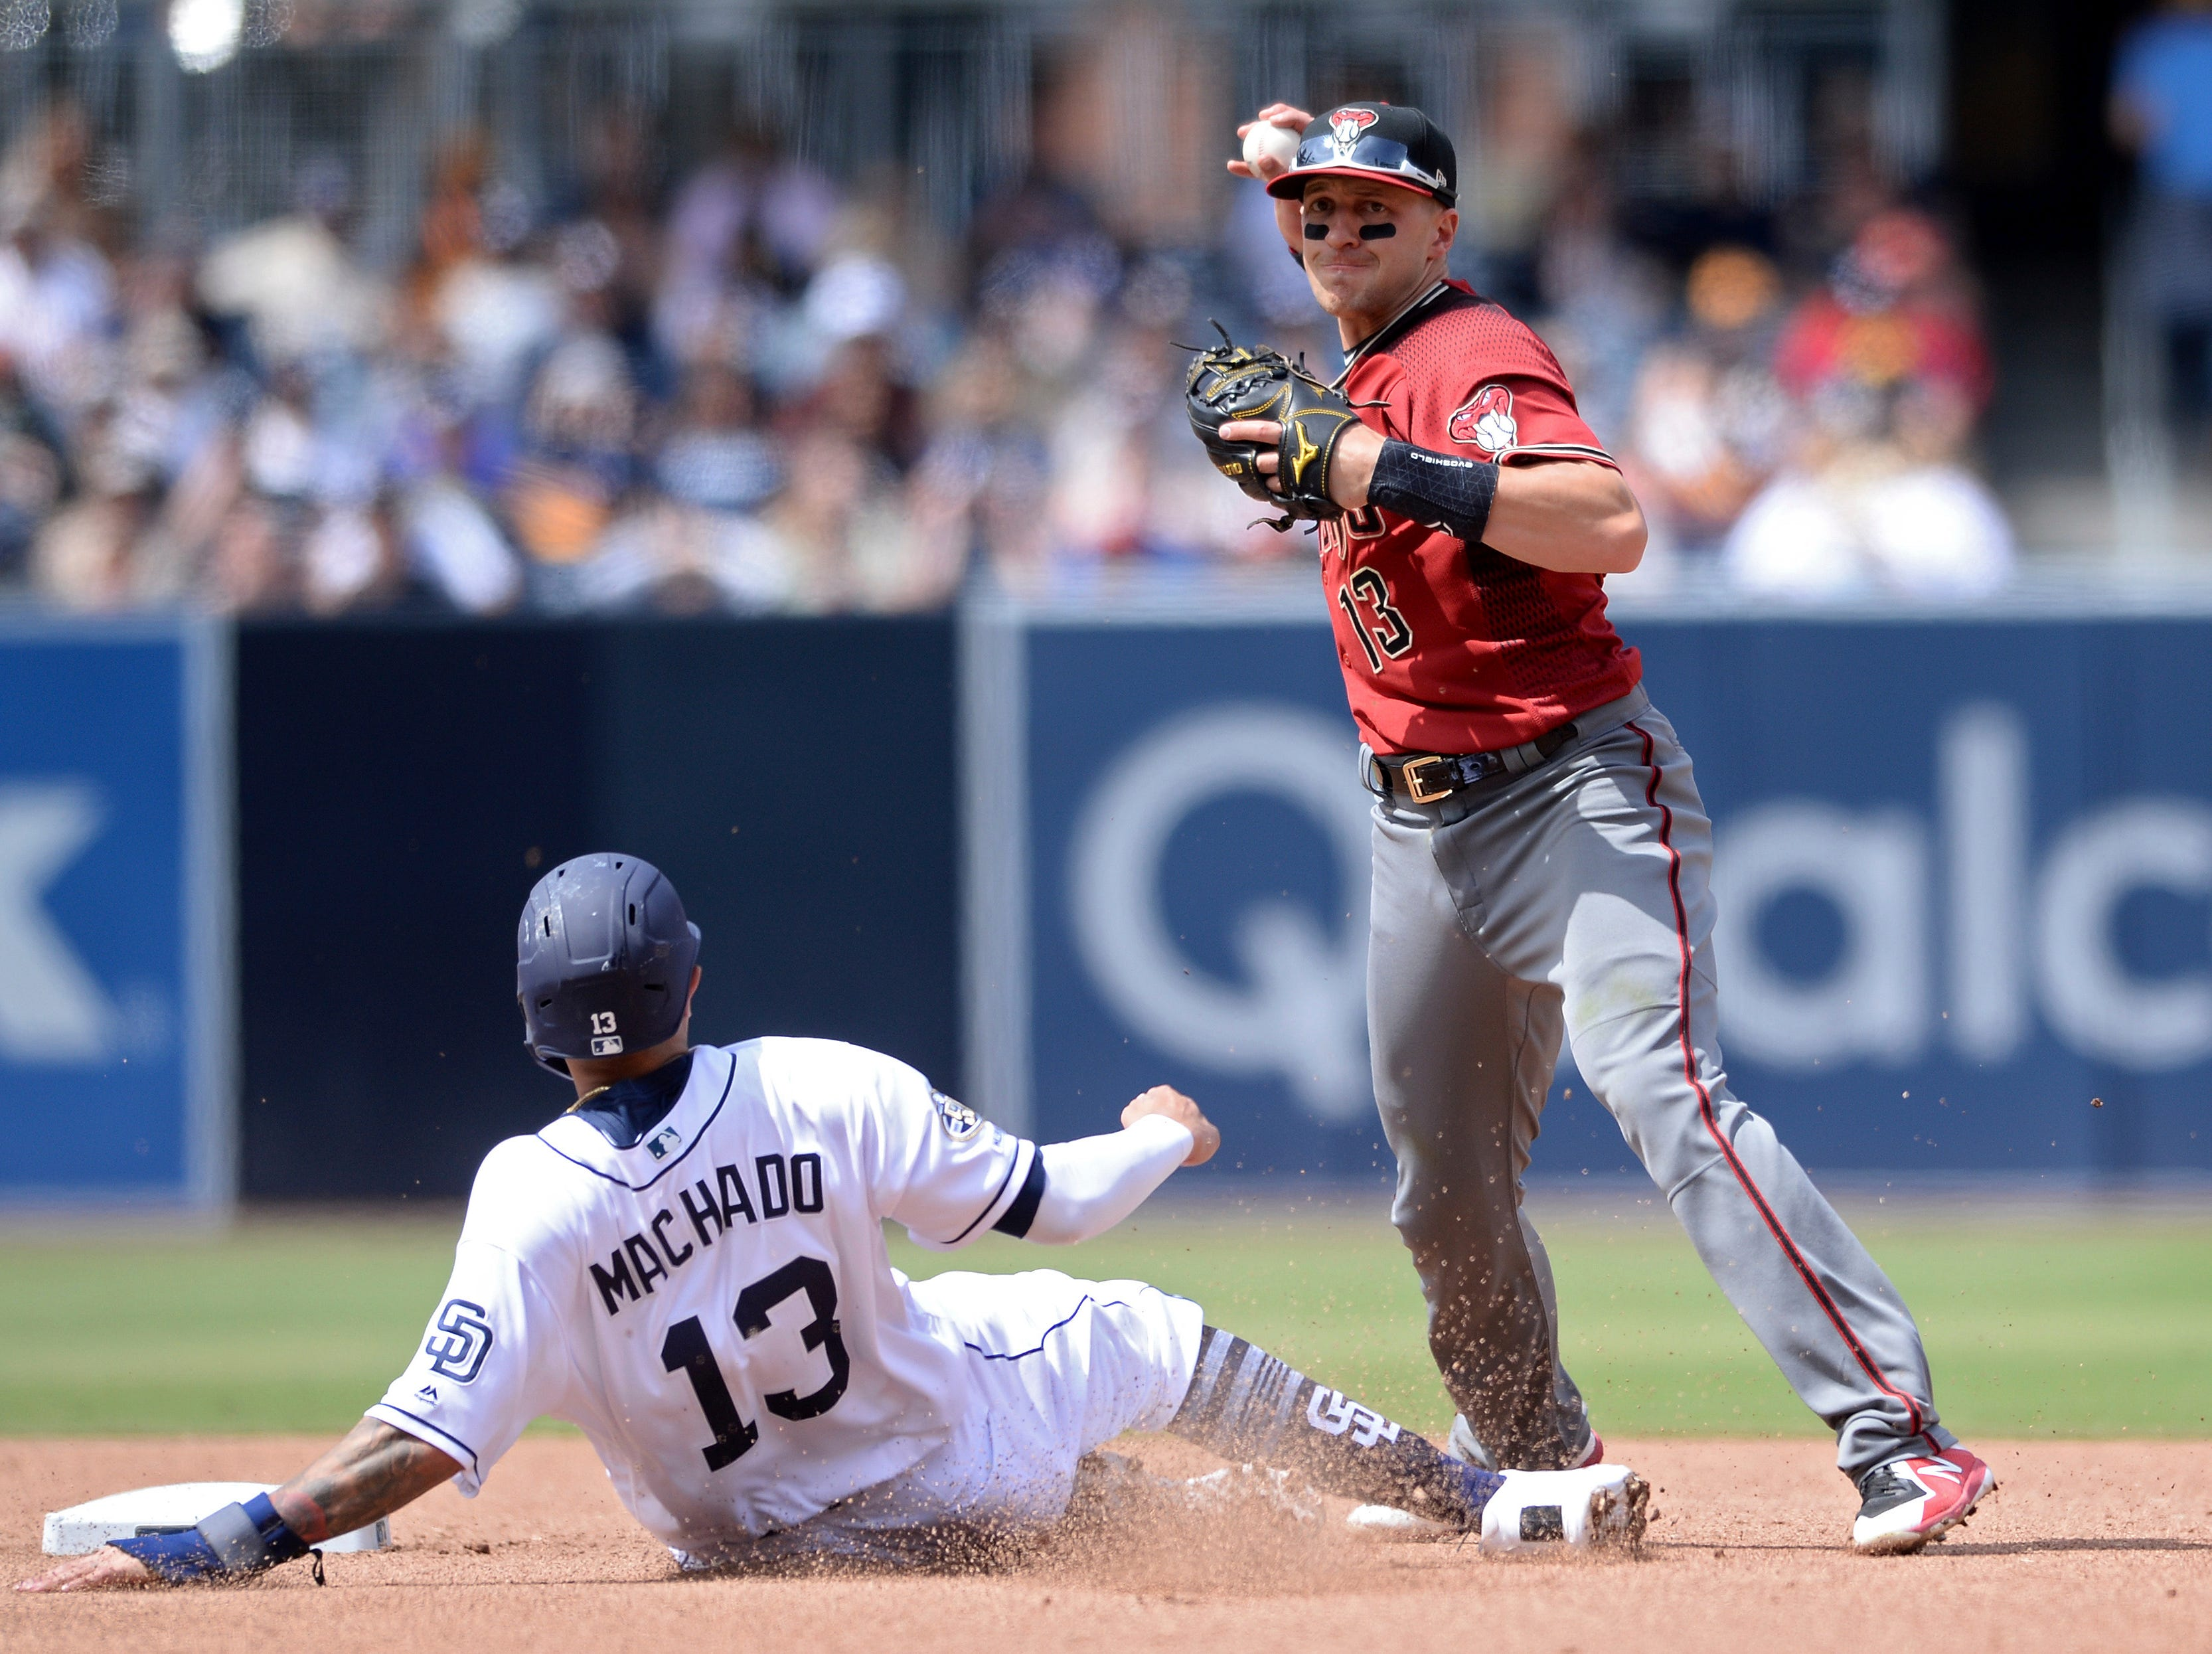 Arizona Diamondbacks shortstop Nick Ahmed forces out San Diego Padres' Manny Machado at second base before throwing to first base to complete the double play on a ball hit by Franmil Reyes during the fourth inning of a baseball game Wednesday, April 3, 2019, in San Diego. (AP Photo/Orlando Ramirez)